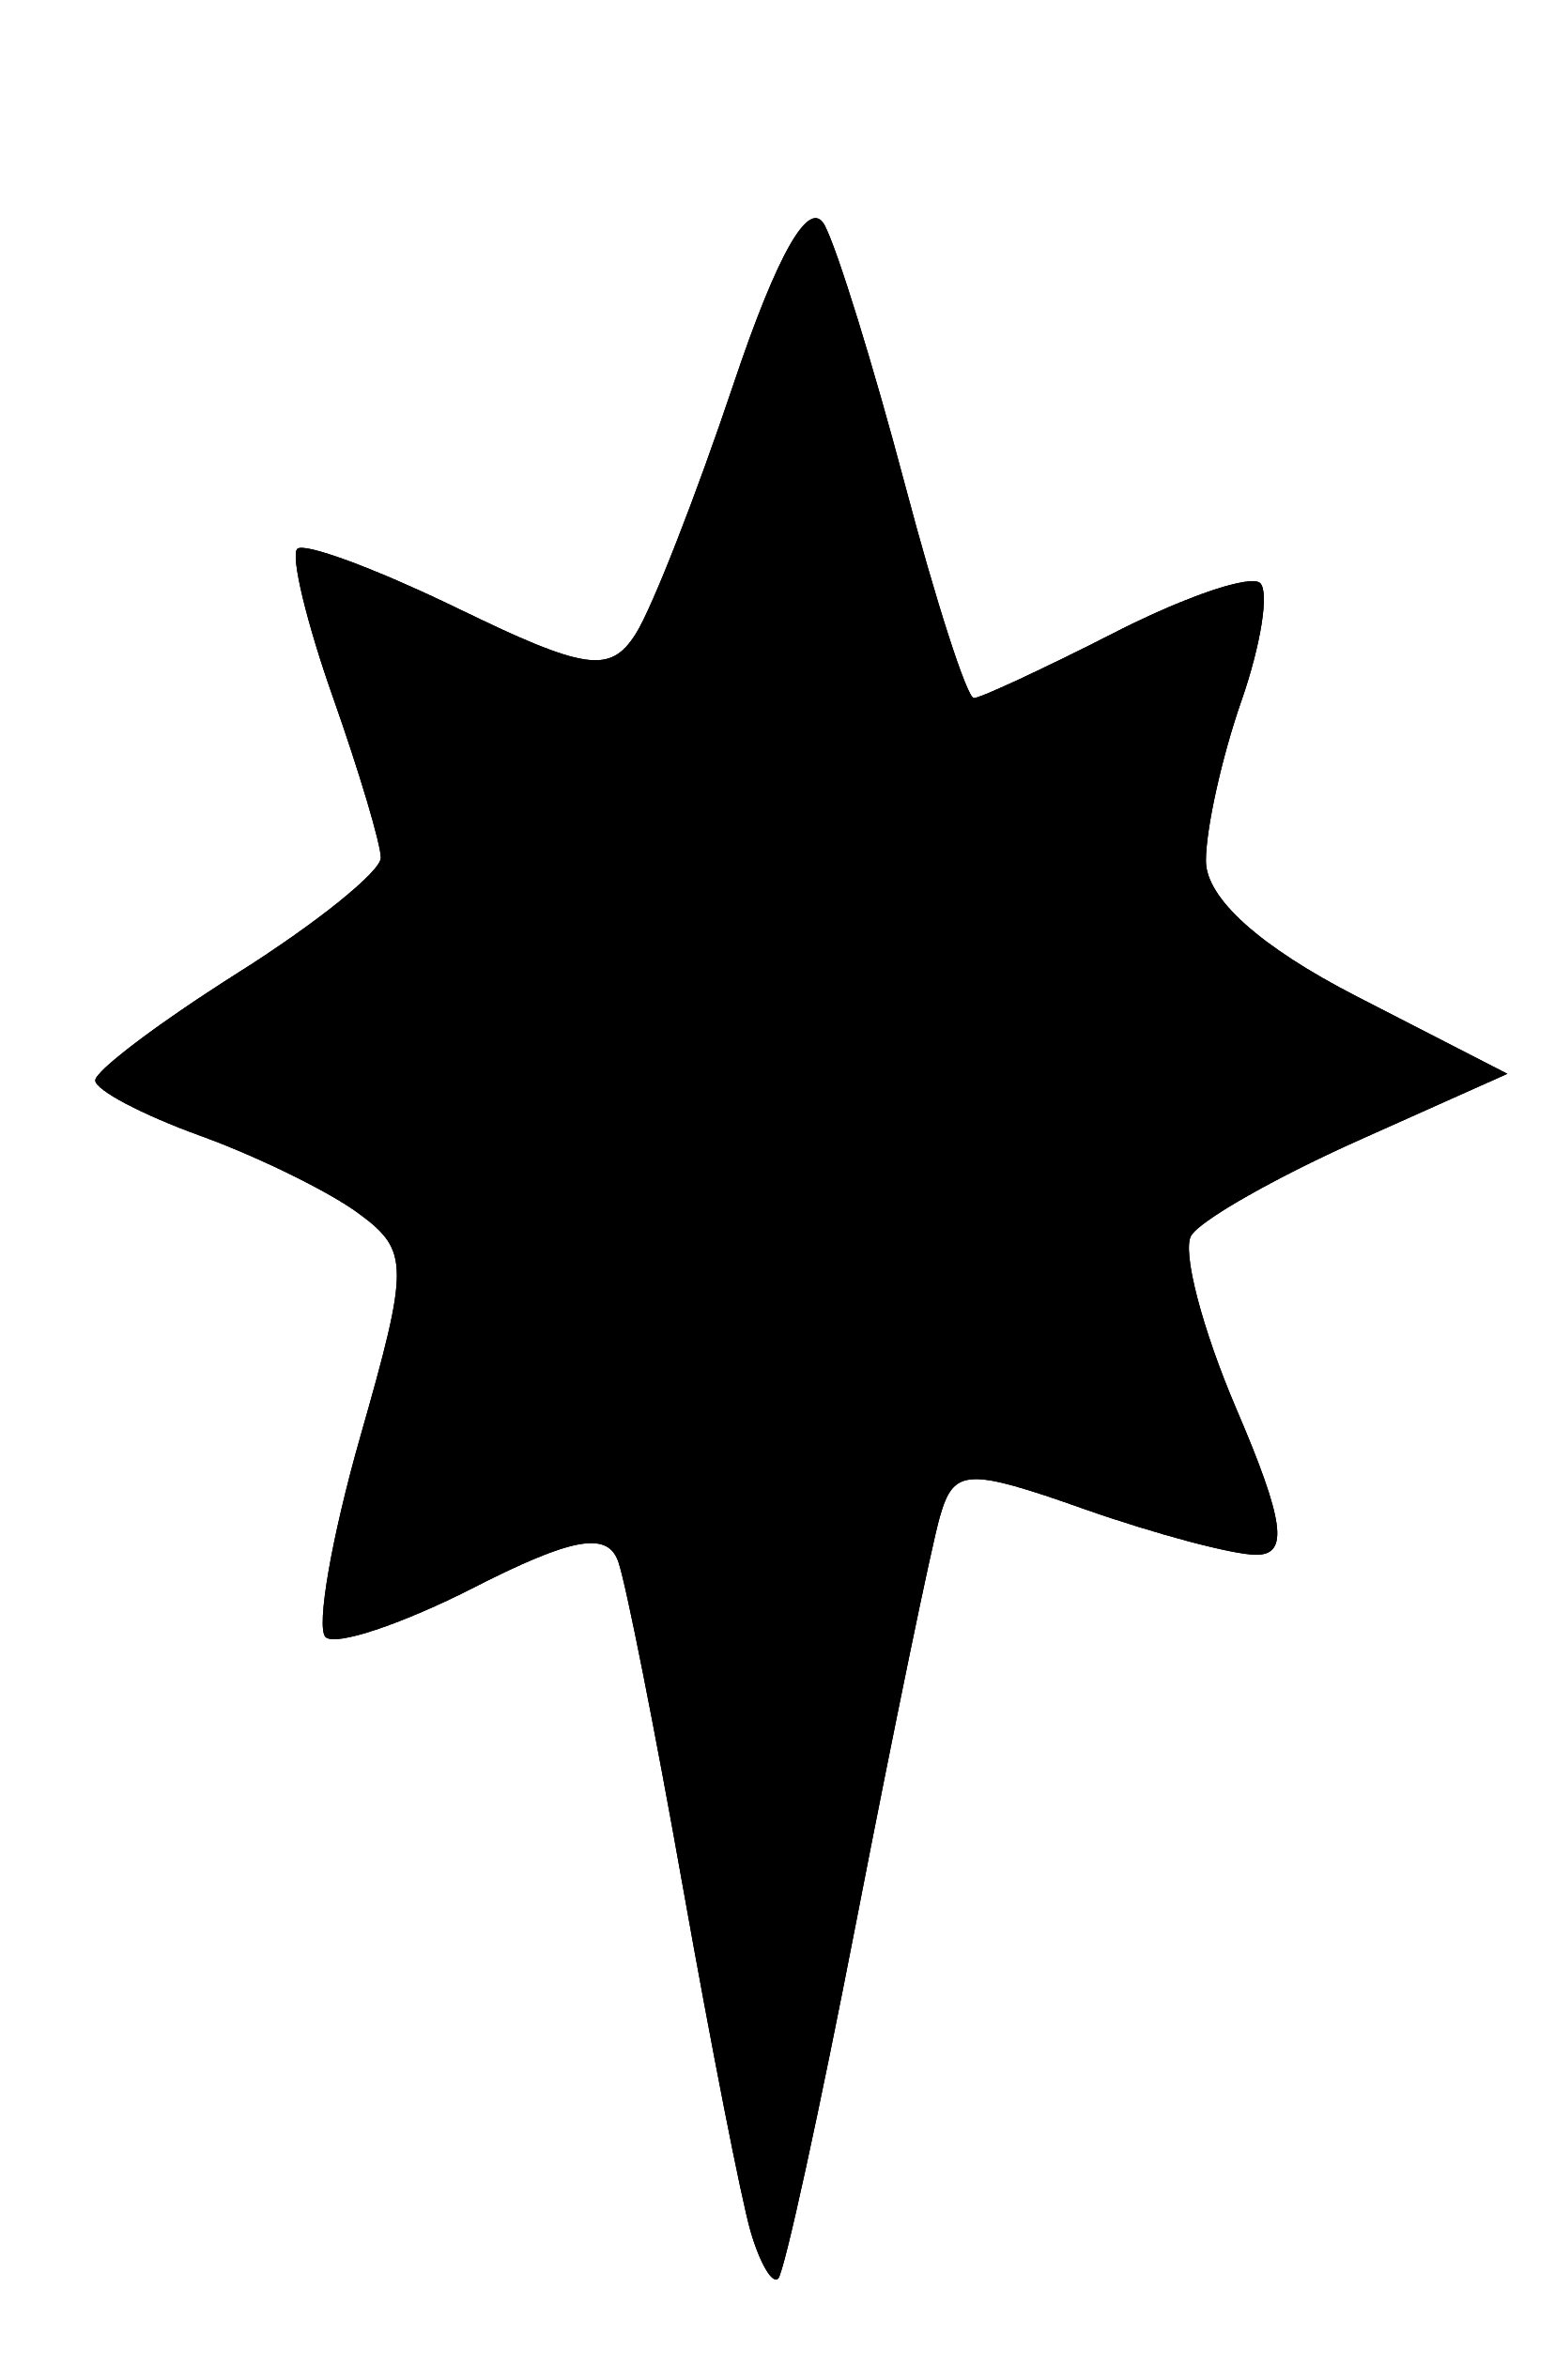 Free SILHOUETTE STAR, Download Free Clip Art, Free Clip Art.